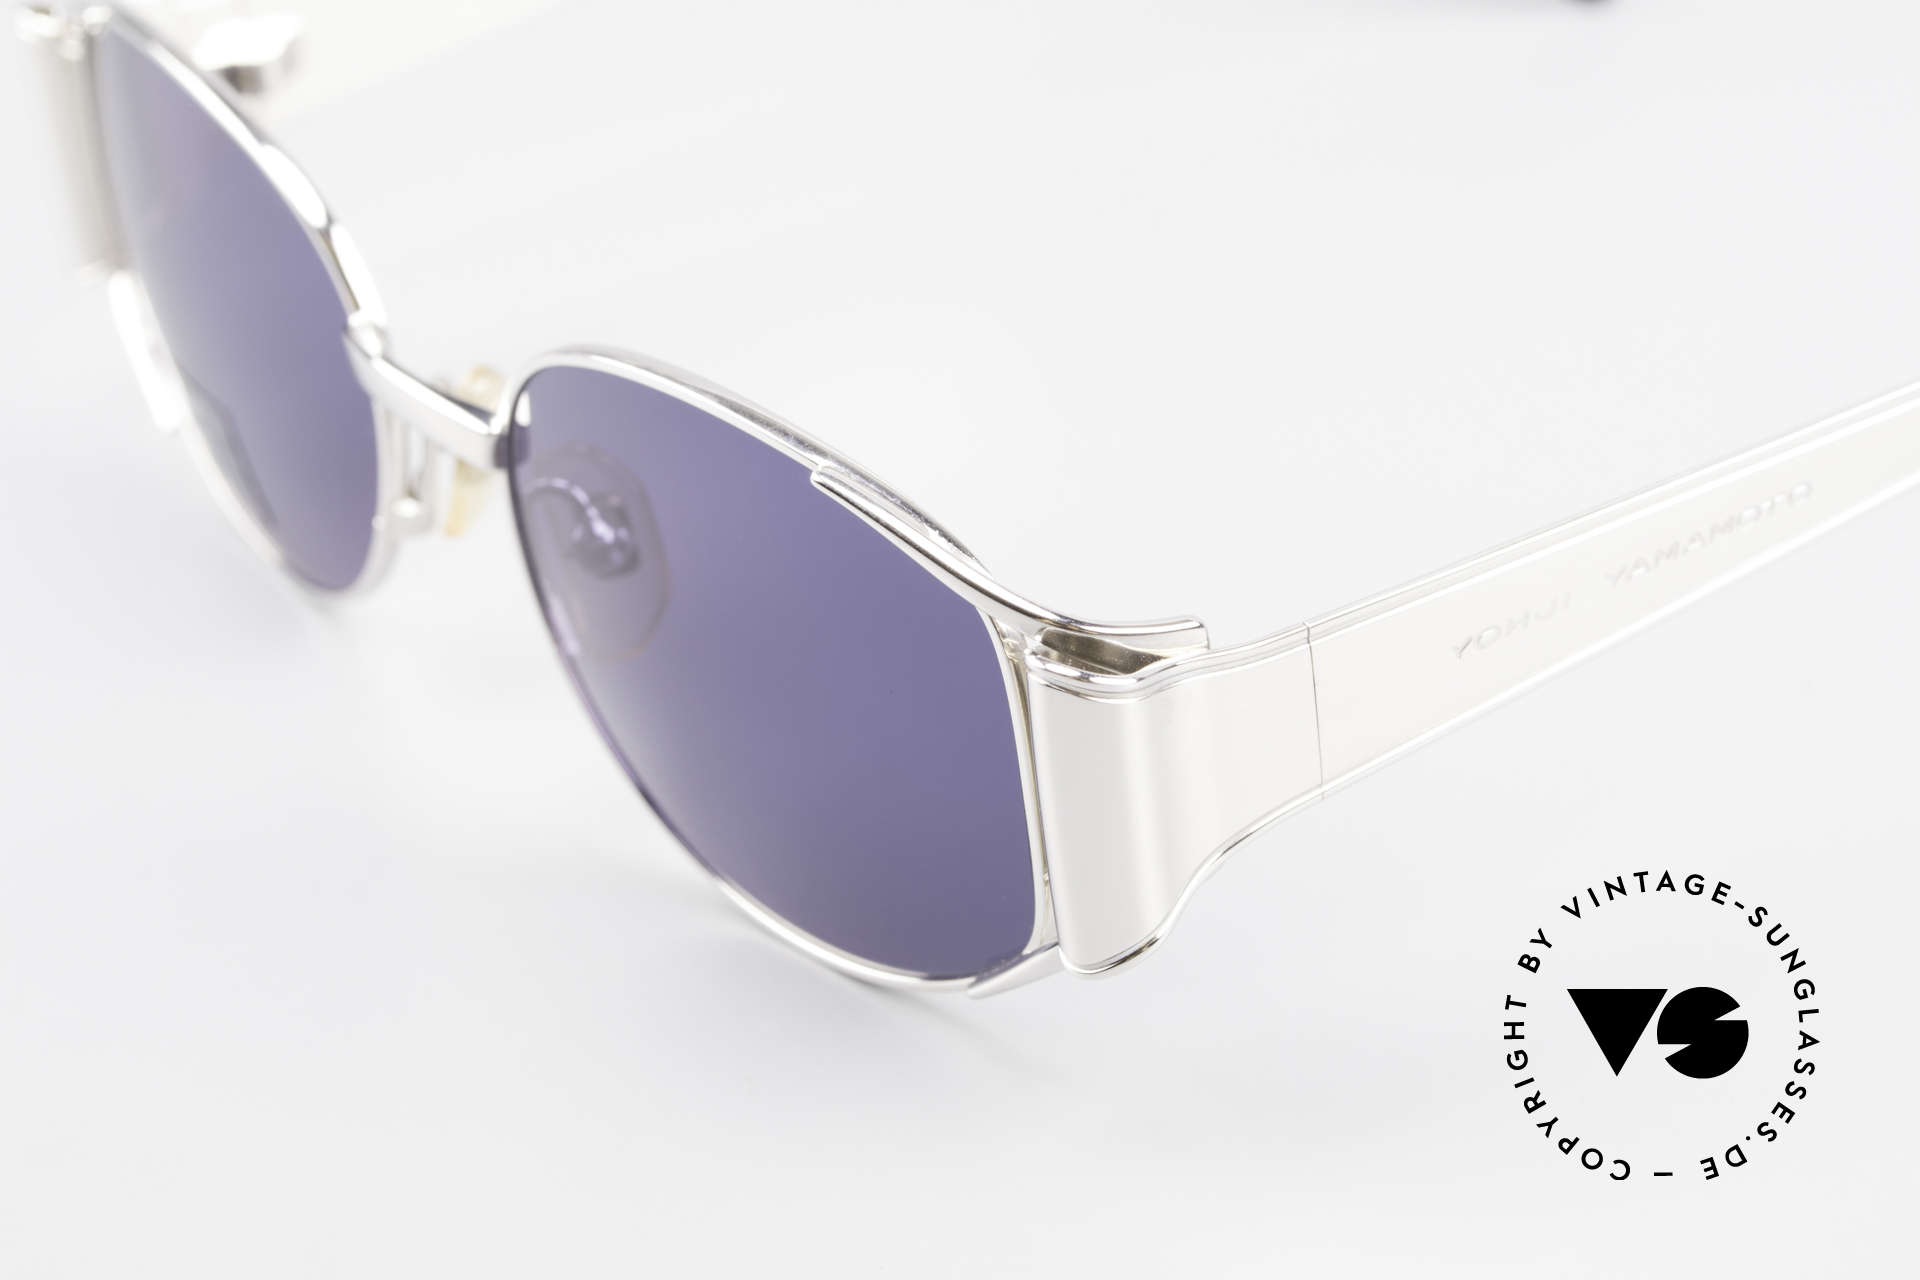 Yohji Yamamoto 52-5107 Limited Edition Sunglasses, LIMITED EDITION: number 40 of only 700pcs, worldwide, Made for Men and Women